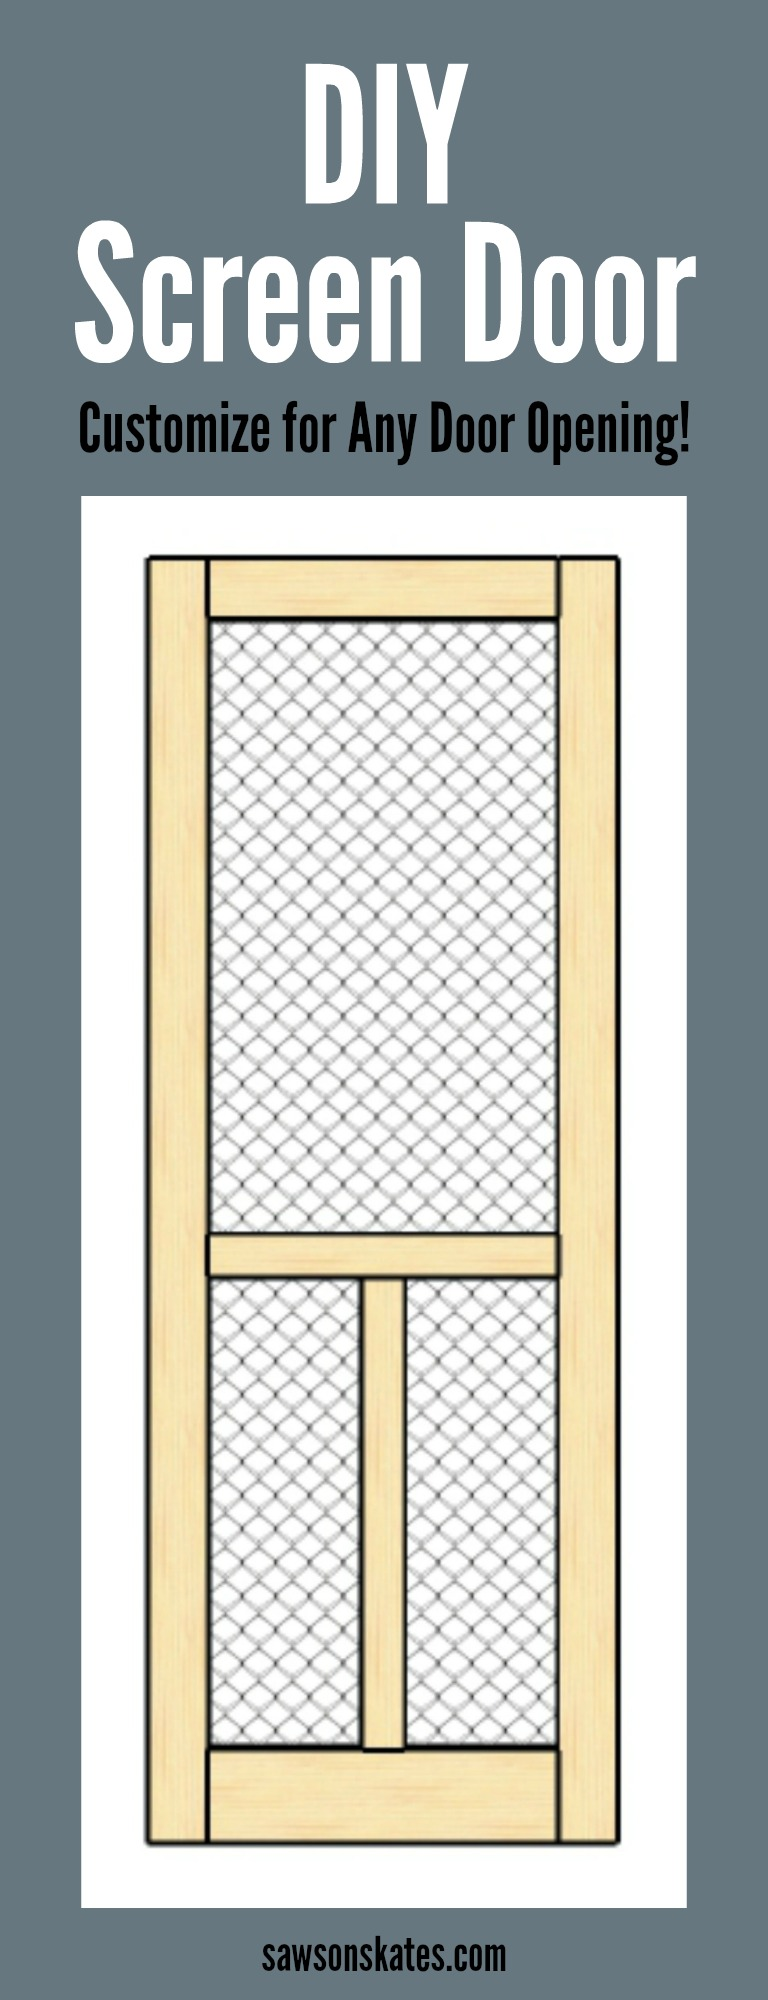 Looking For Screen Door Ideas? DIY Your Own! This Easy To Follow Plan Shows